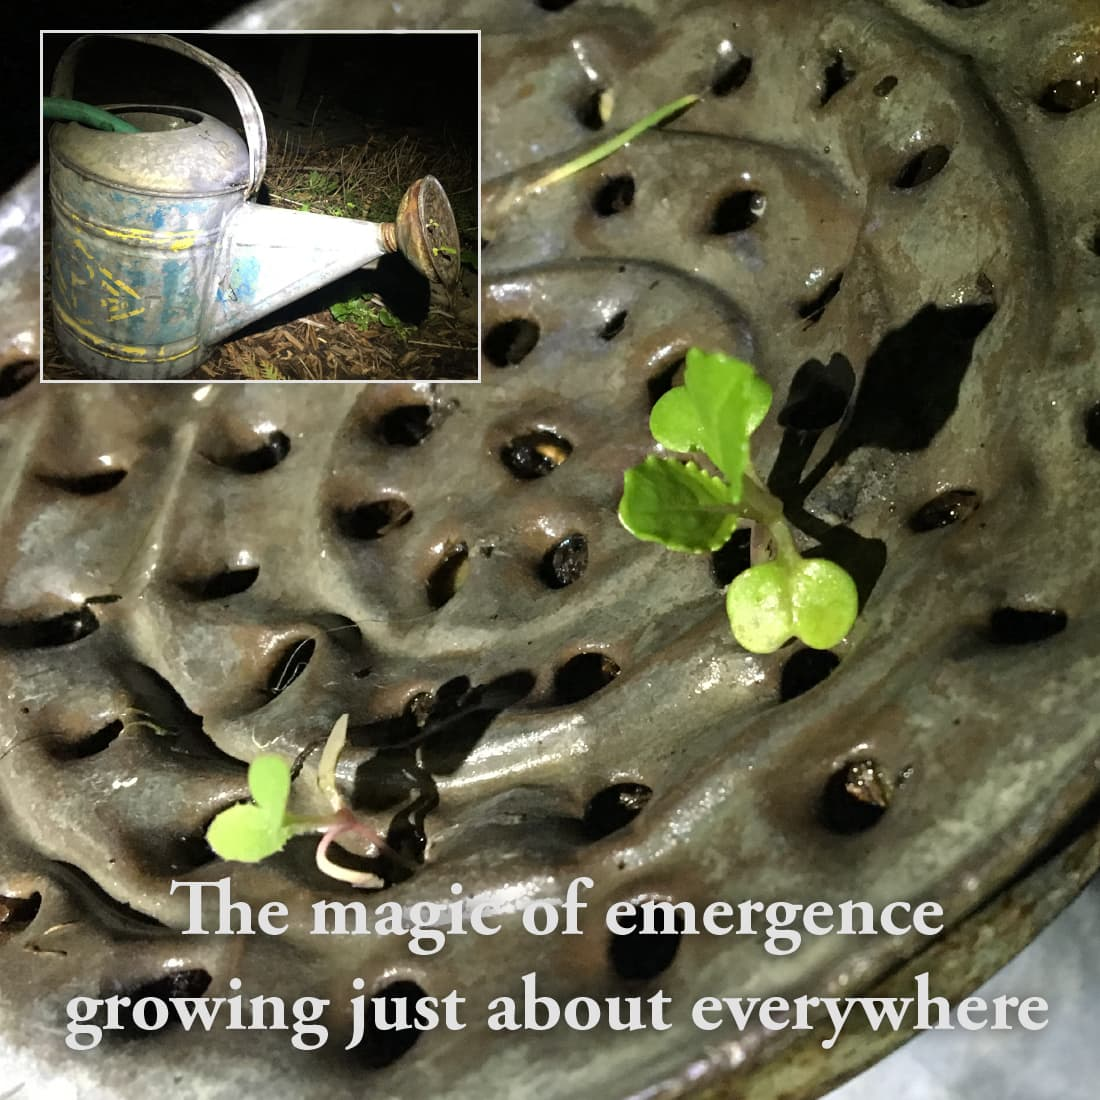 meme-watering-can-sprouts